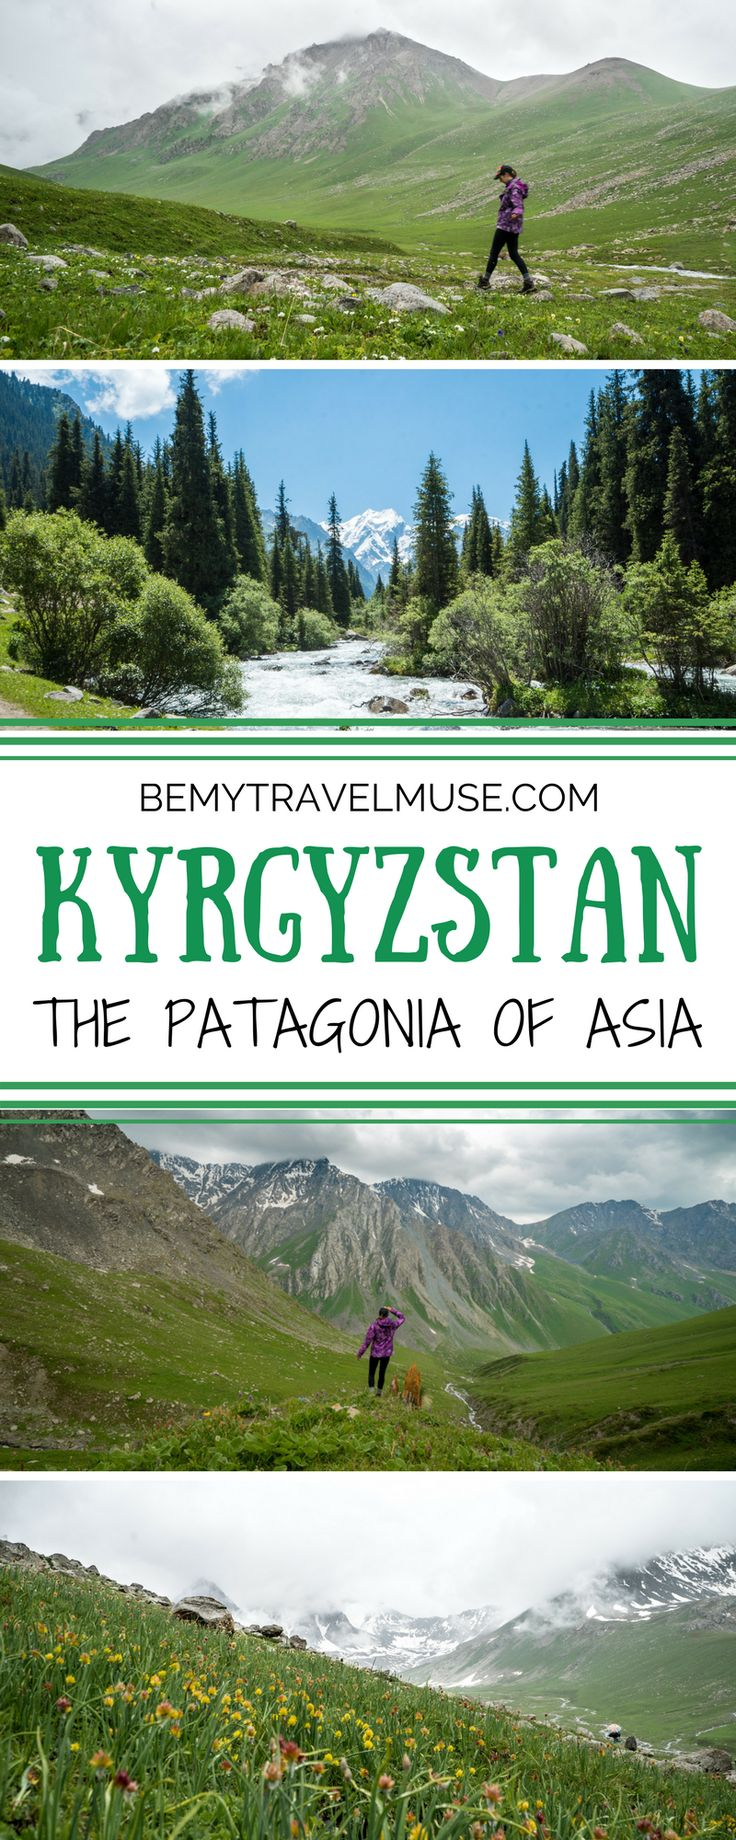 Why Kyrgyzstan should be coined the Patagonia of Central Asia. Incredible hiking and trekking, stunning natural scenery, and rugged mountain passes make this country an outdoor lover's dream! || Be My Travel Muse